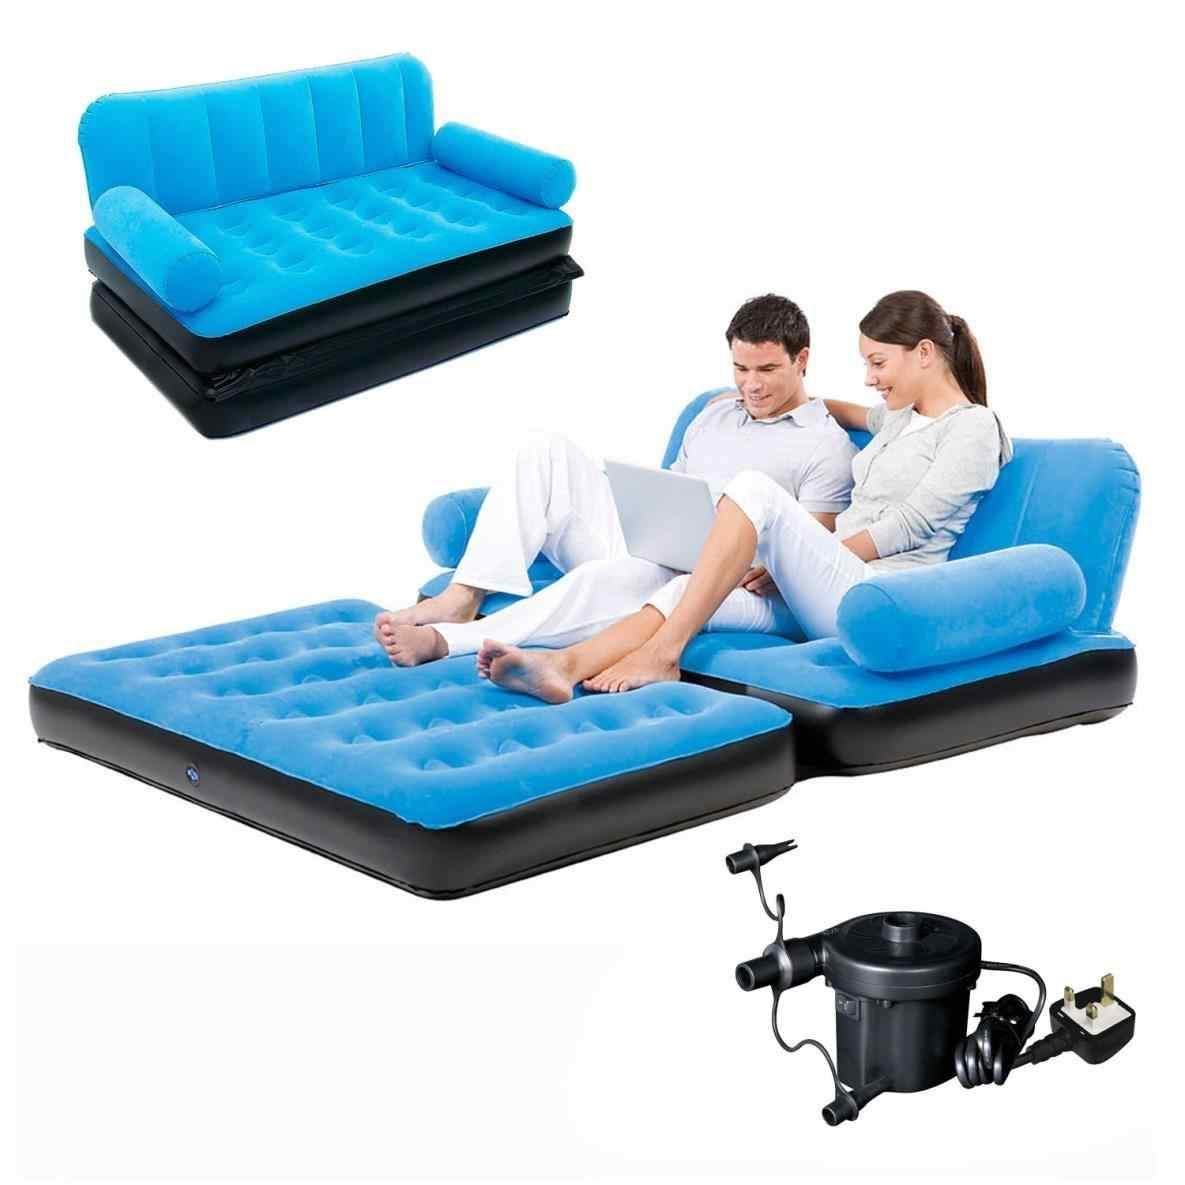 Sleeper Sofa With Blow Up Mattress | Chair And Sofa Throughout Intex Sleep Sofas (Image 19 of 20)